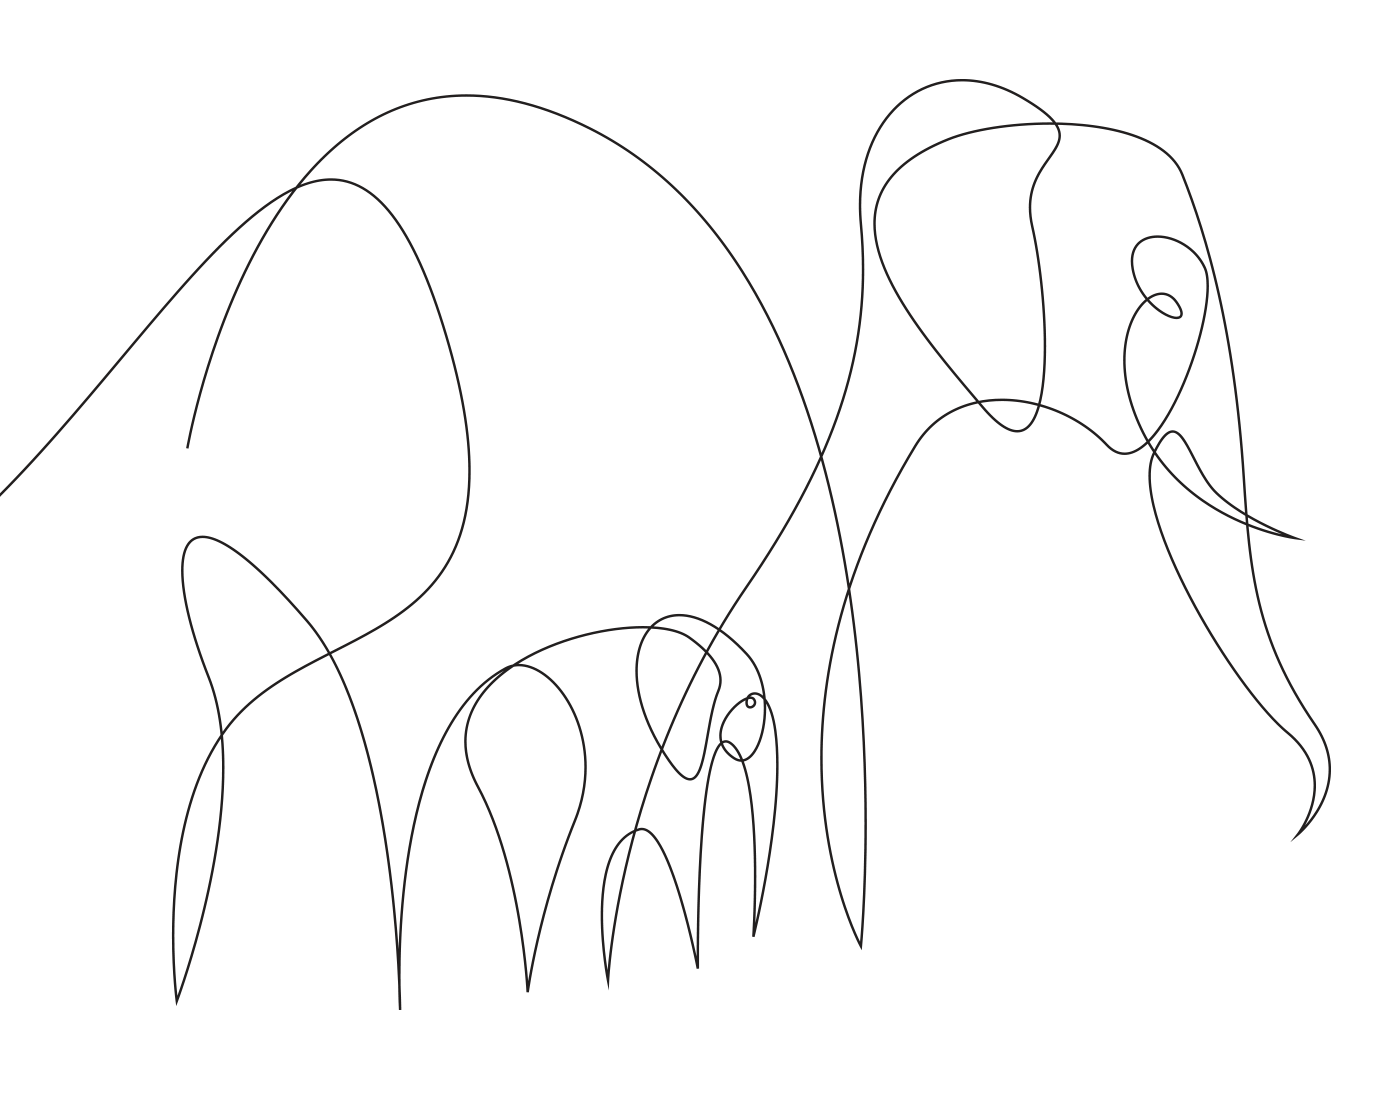 1400x1100 Minimal, Elegant One Line Drawings Illustrate The Magnificence